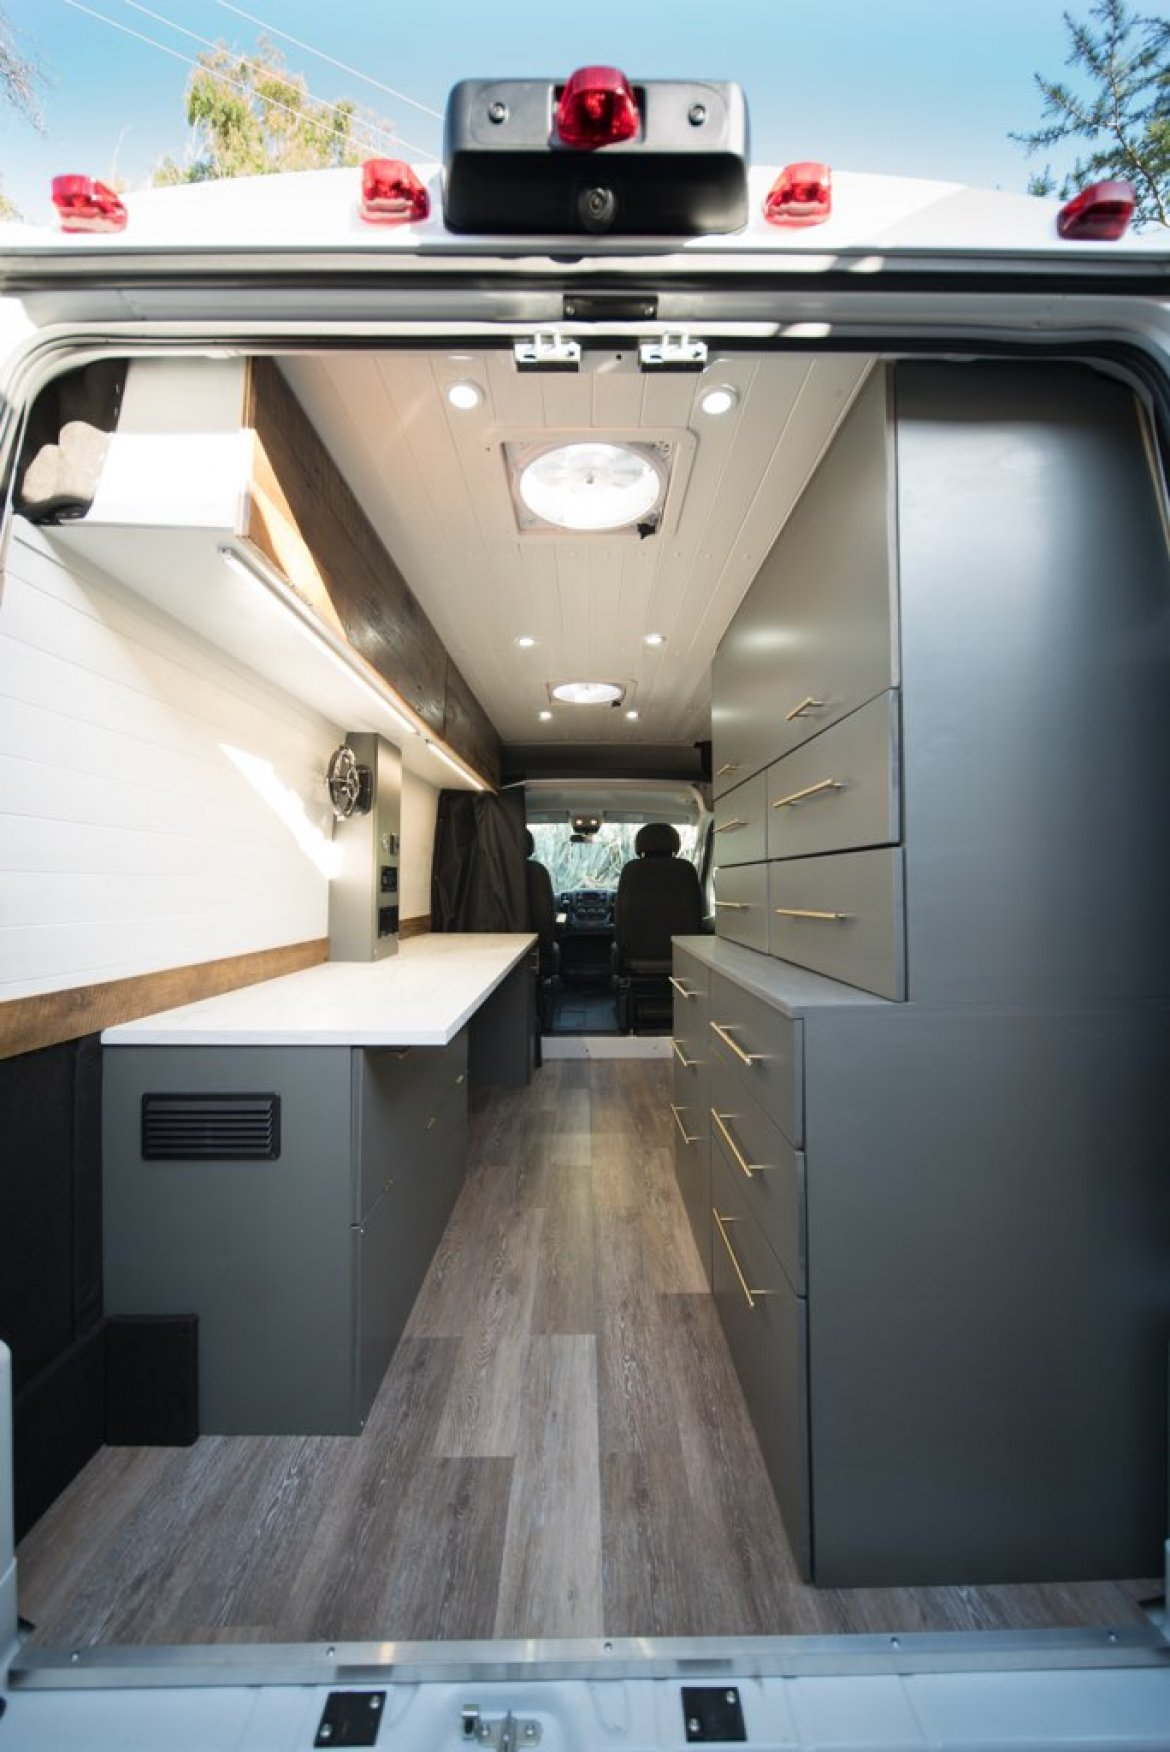 CEO SUV Mobile Office for sale: 2019 Dodge RAM pro master 1500 highroof by Custom build